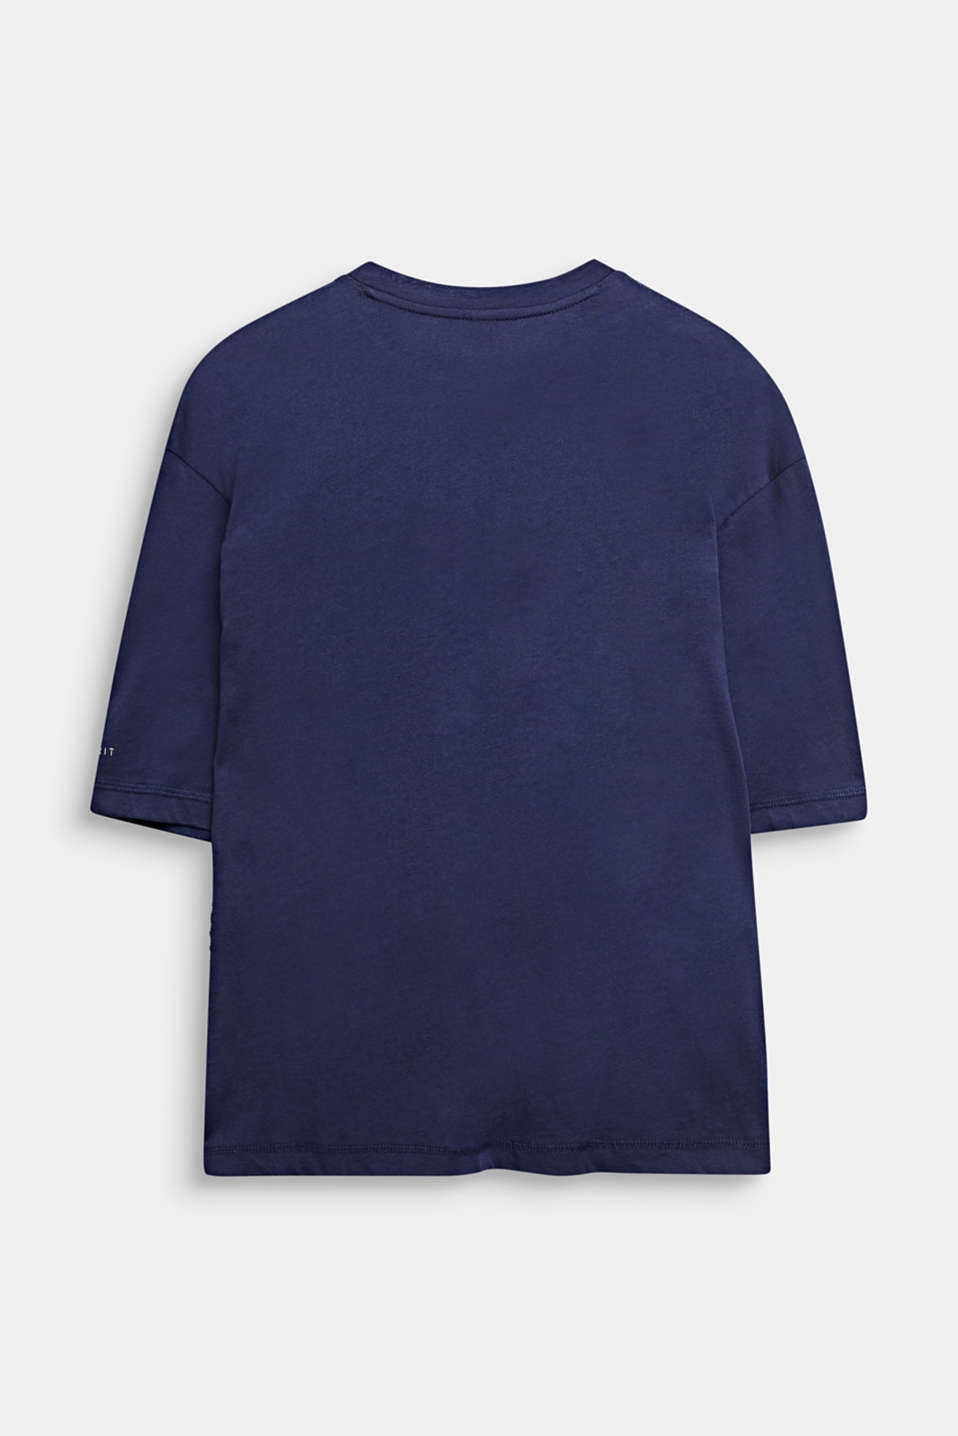 T-shirt with a zip detail, 100% cotton, LCMIDNIGHT BLUE, detail image number 1